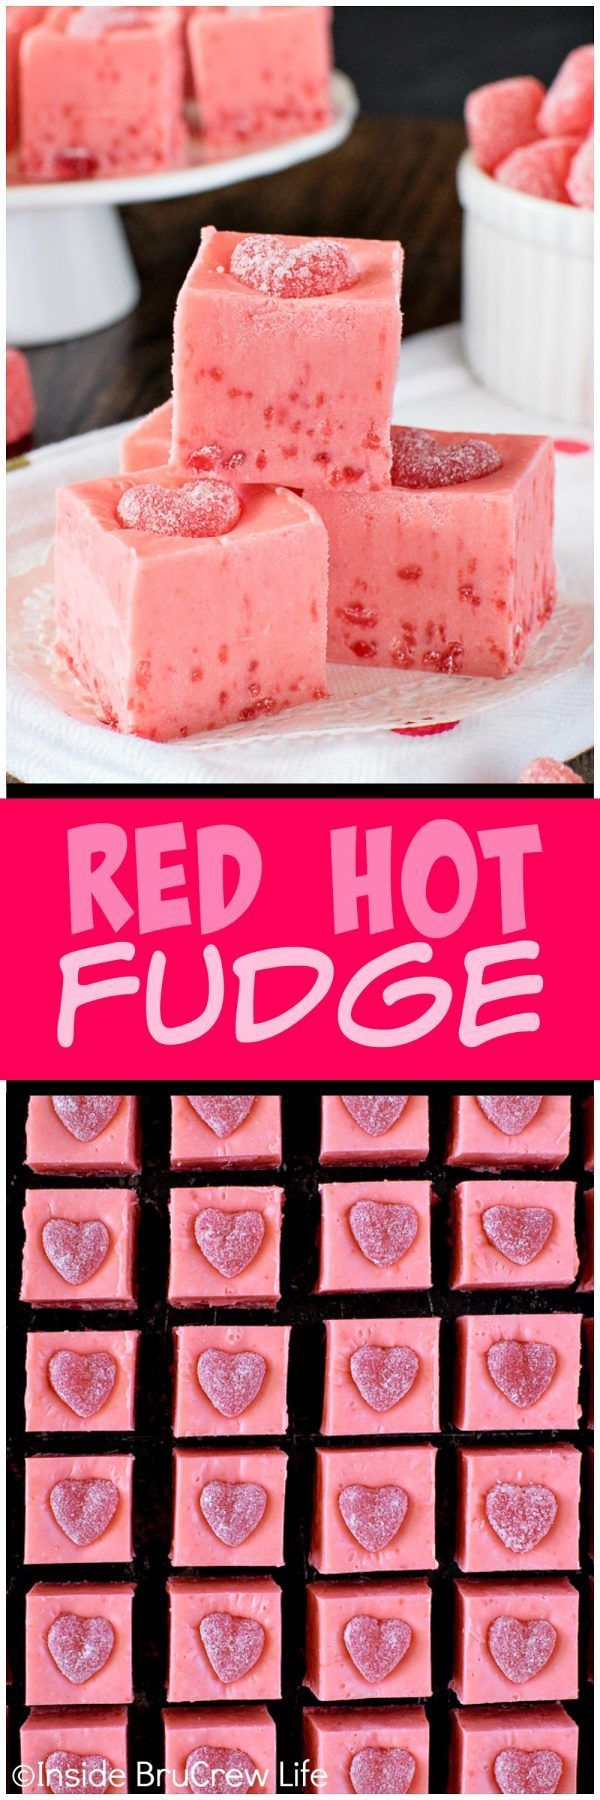 Red Hot Fudge - crushed cinnamon candies add a fun spicy flair to this creamy fudge! Great recipe for Valentine's day!